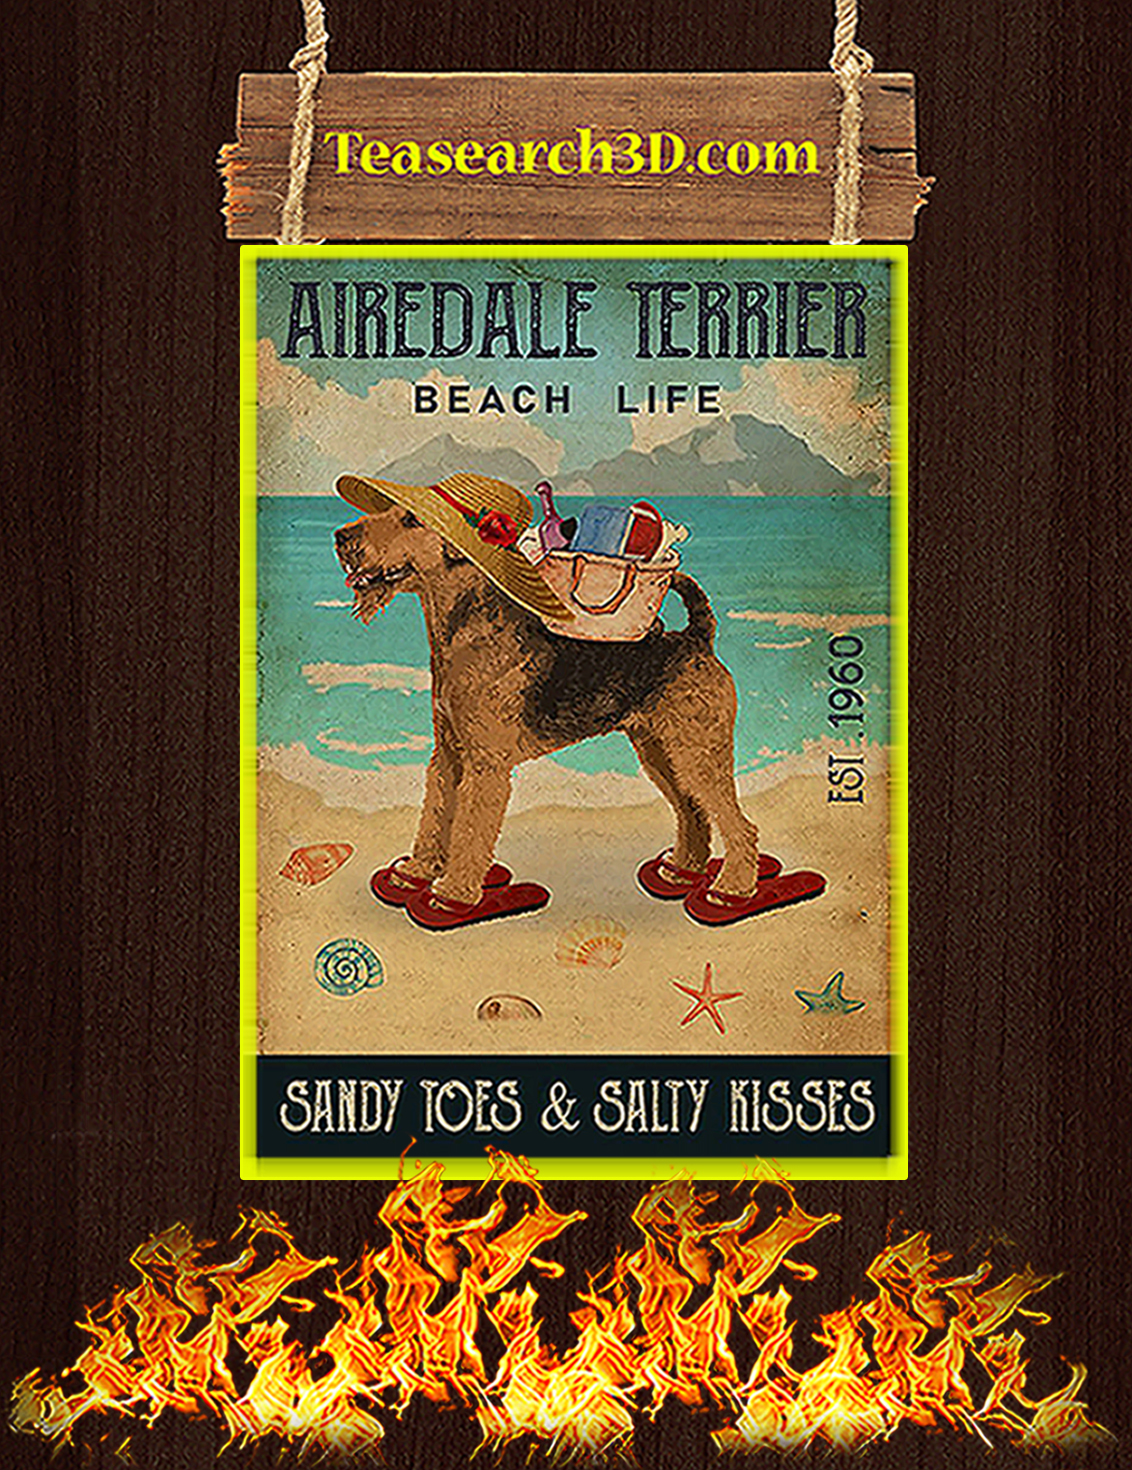 Airedale terrier beach life sandy toes and salty kisses poster A3